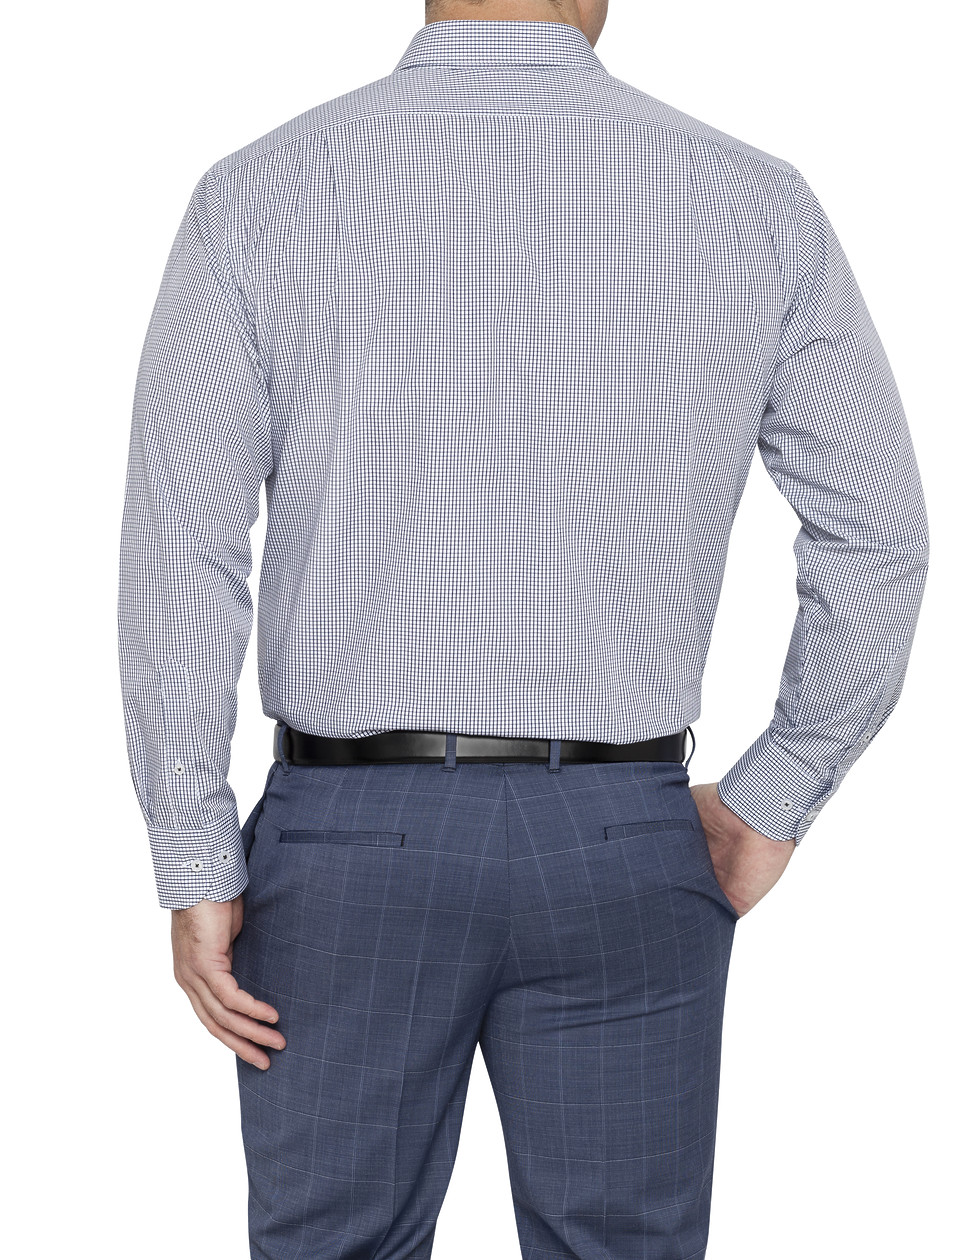 Mens classic fit shirt black and white check van heusen for Black and white check mens shirt